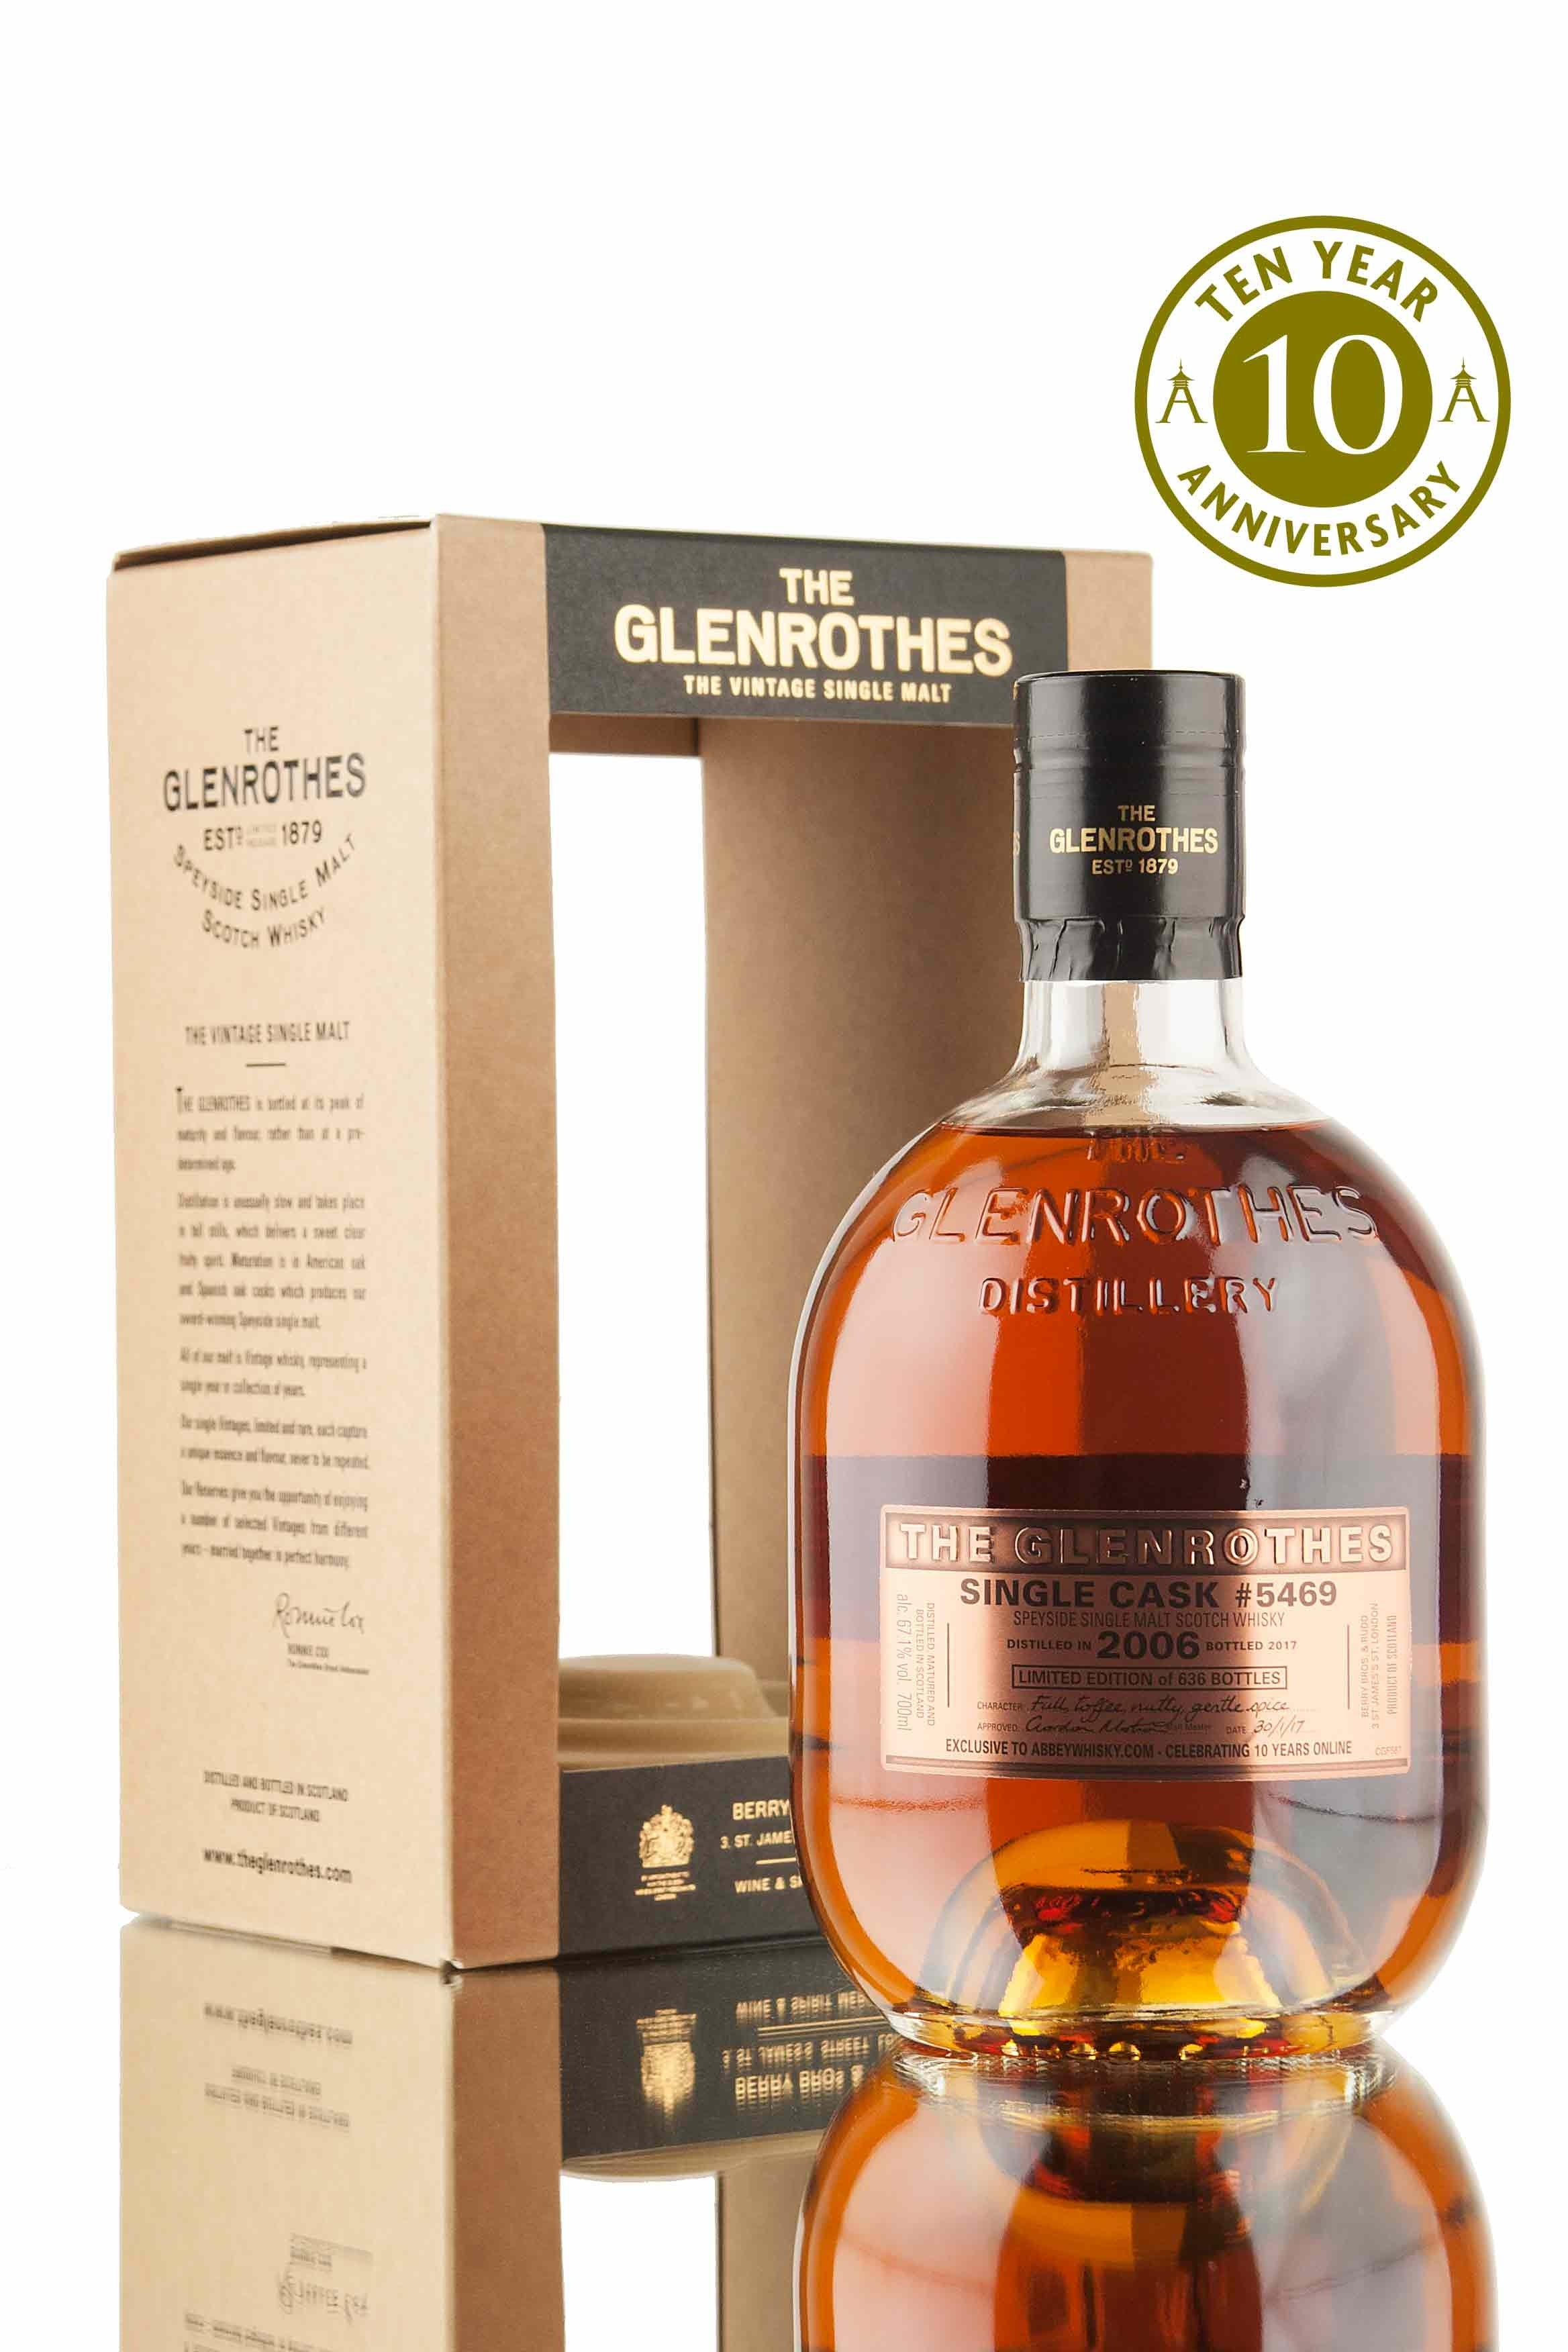 Glenrothes 2006 - Single Cask 5469 | AW 10th Anniversary